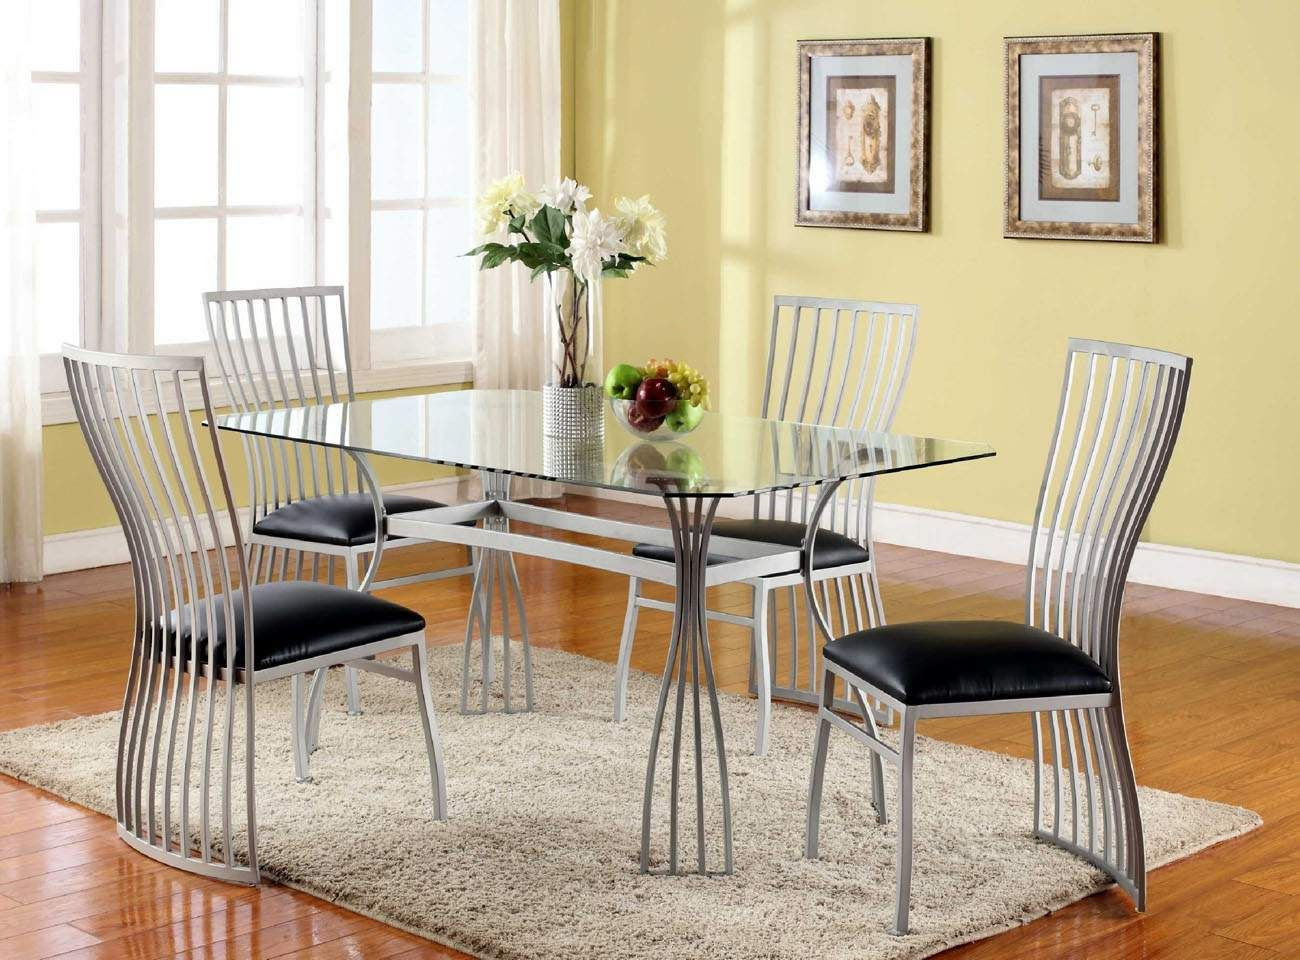 Dining Room Table Chair Plans PDF Download woodworking hand tools